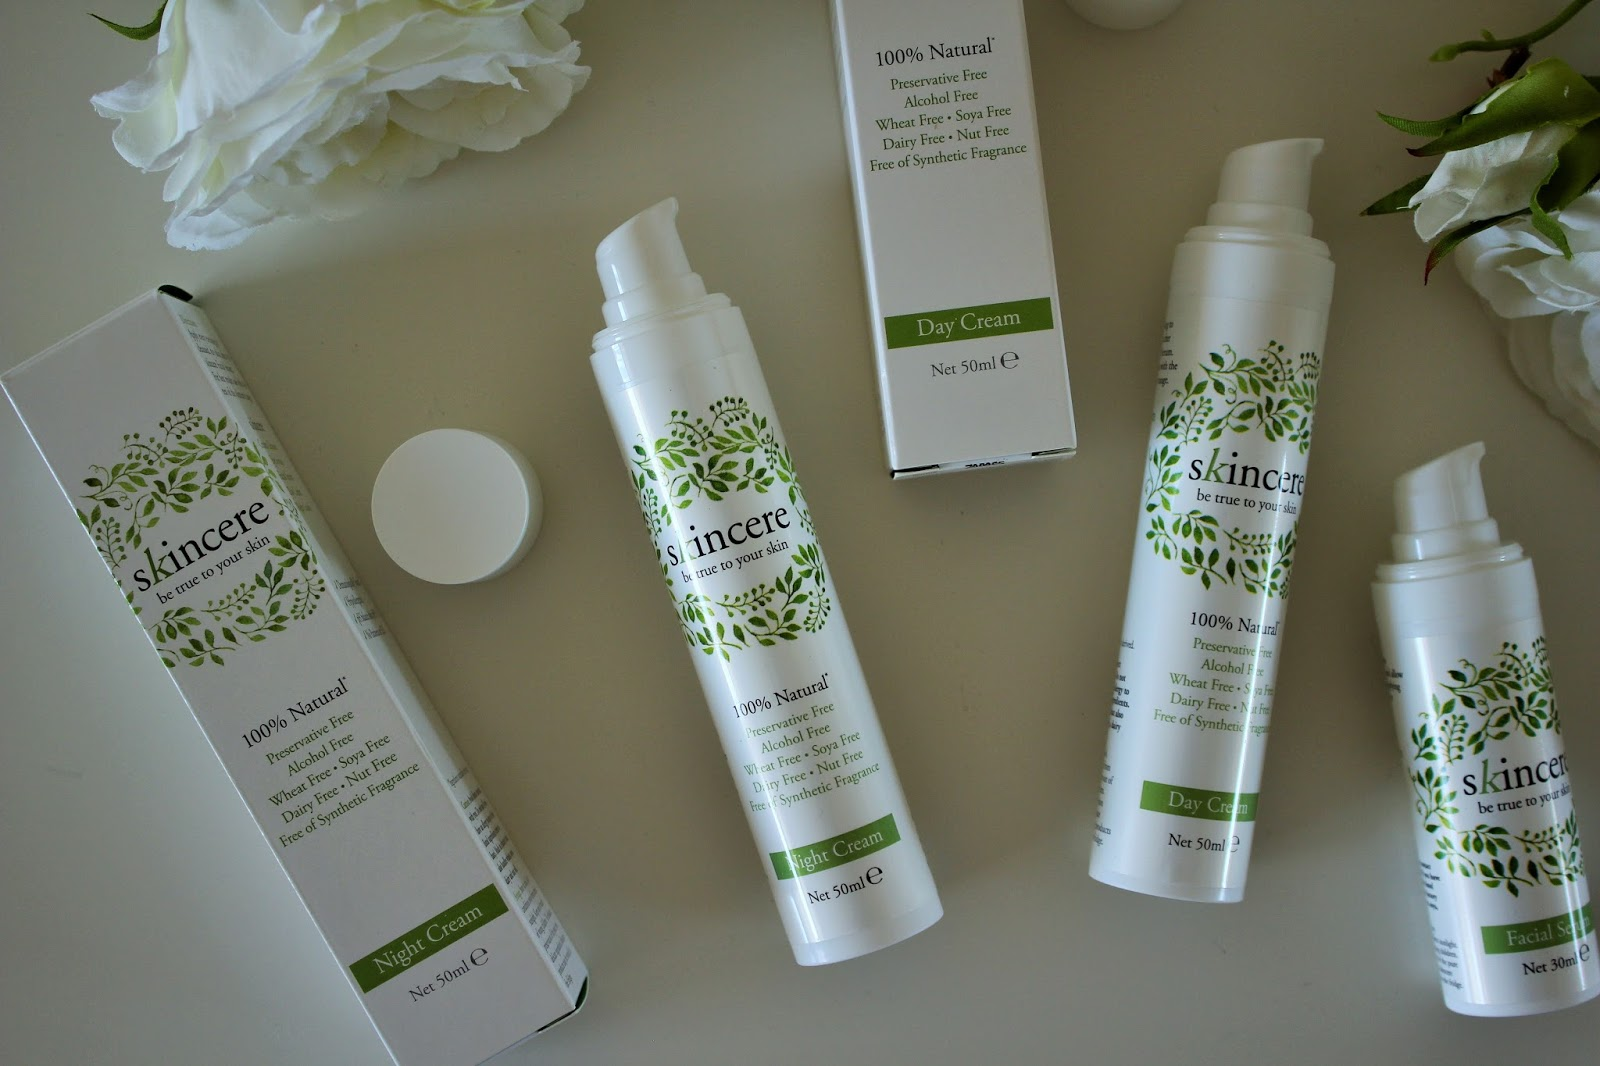 Skincere Natural Skincare Review 2